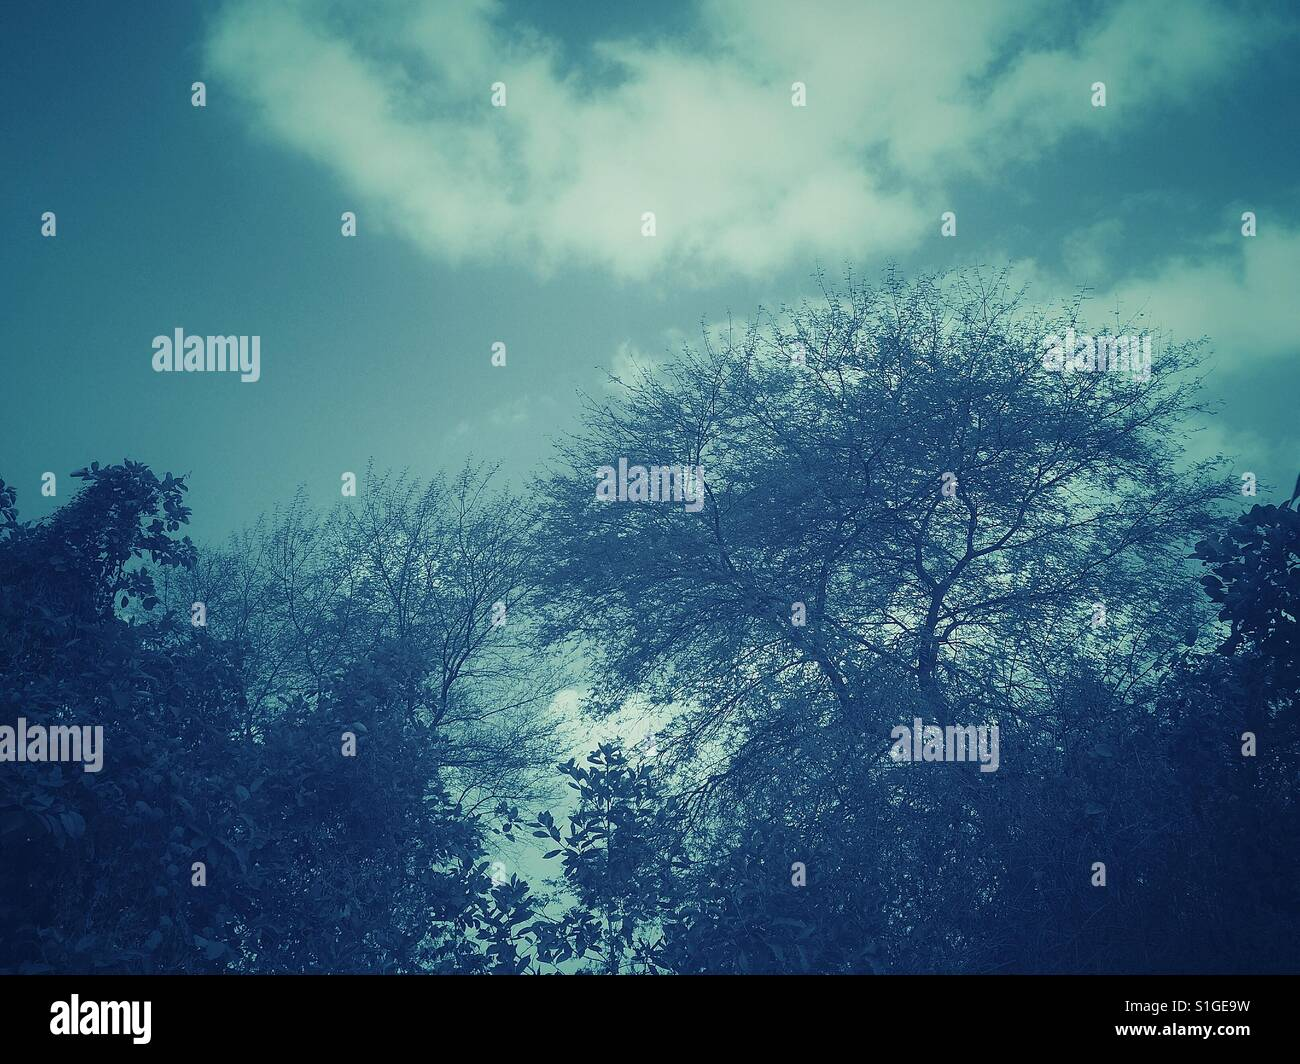 Trees and overcast sky - Stock Image